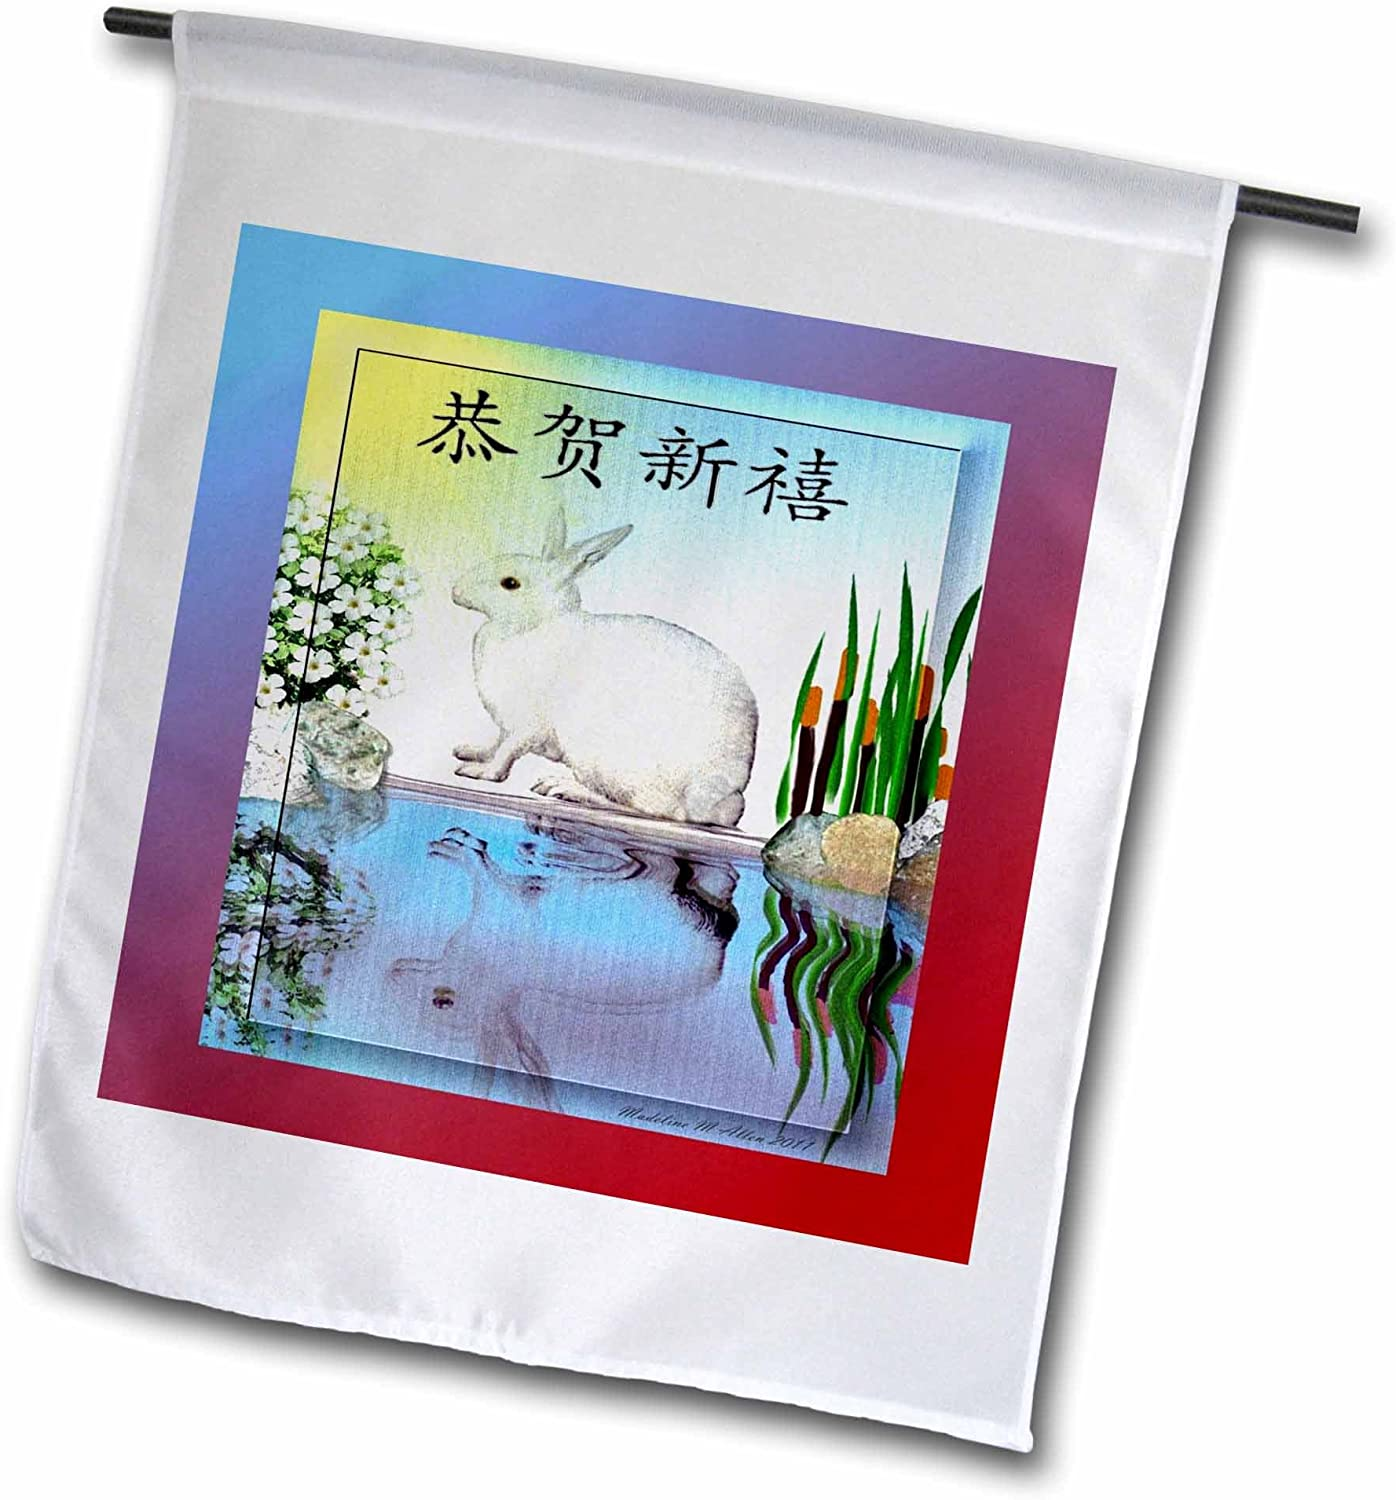 3dRose fl_6539_1 Happy New Year 2-Hare-Chinese, Garden Flag, 12 by 18-Inch